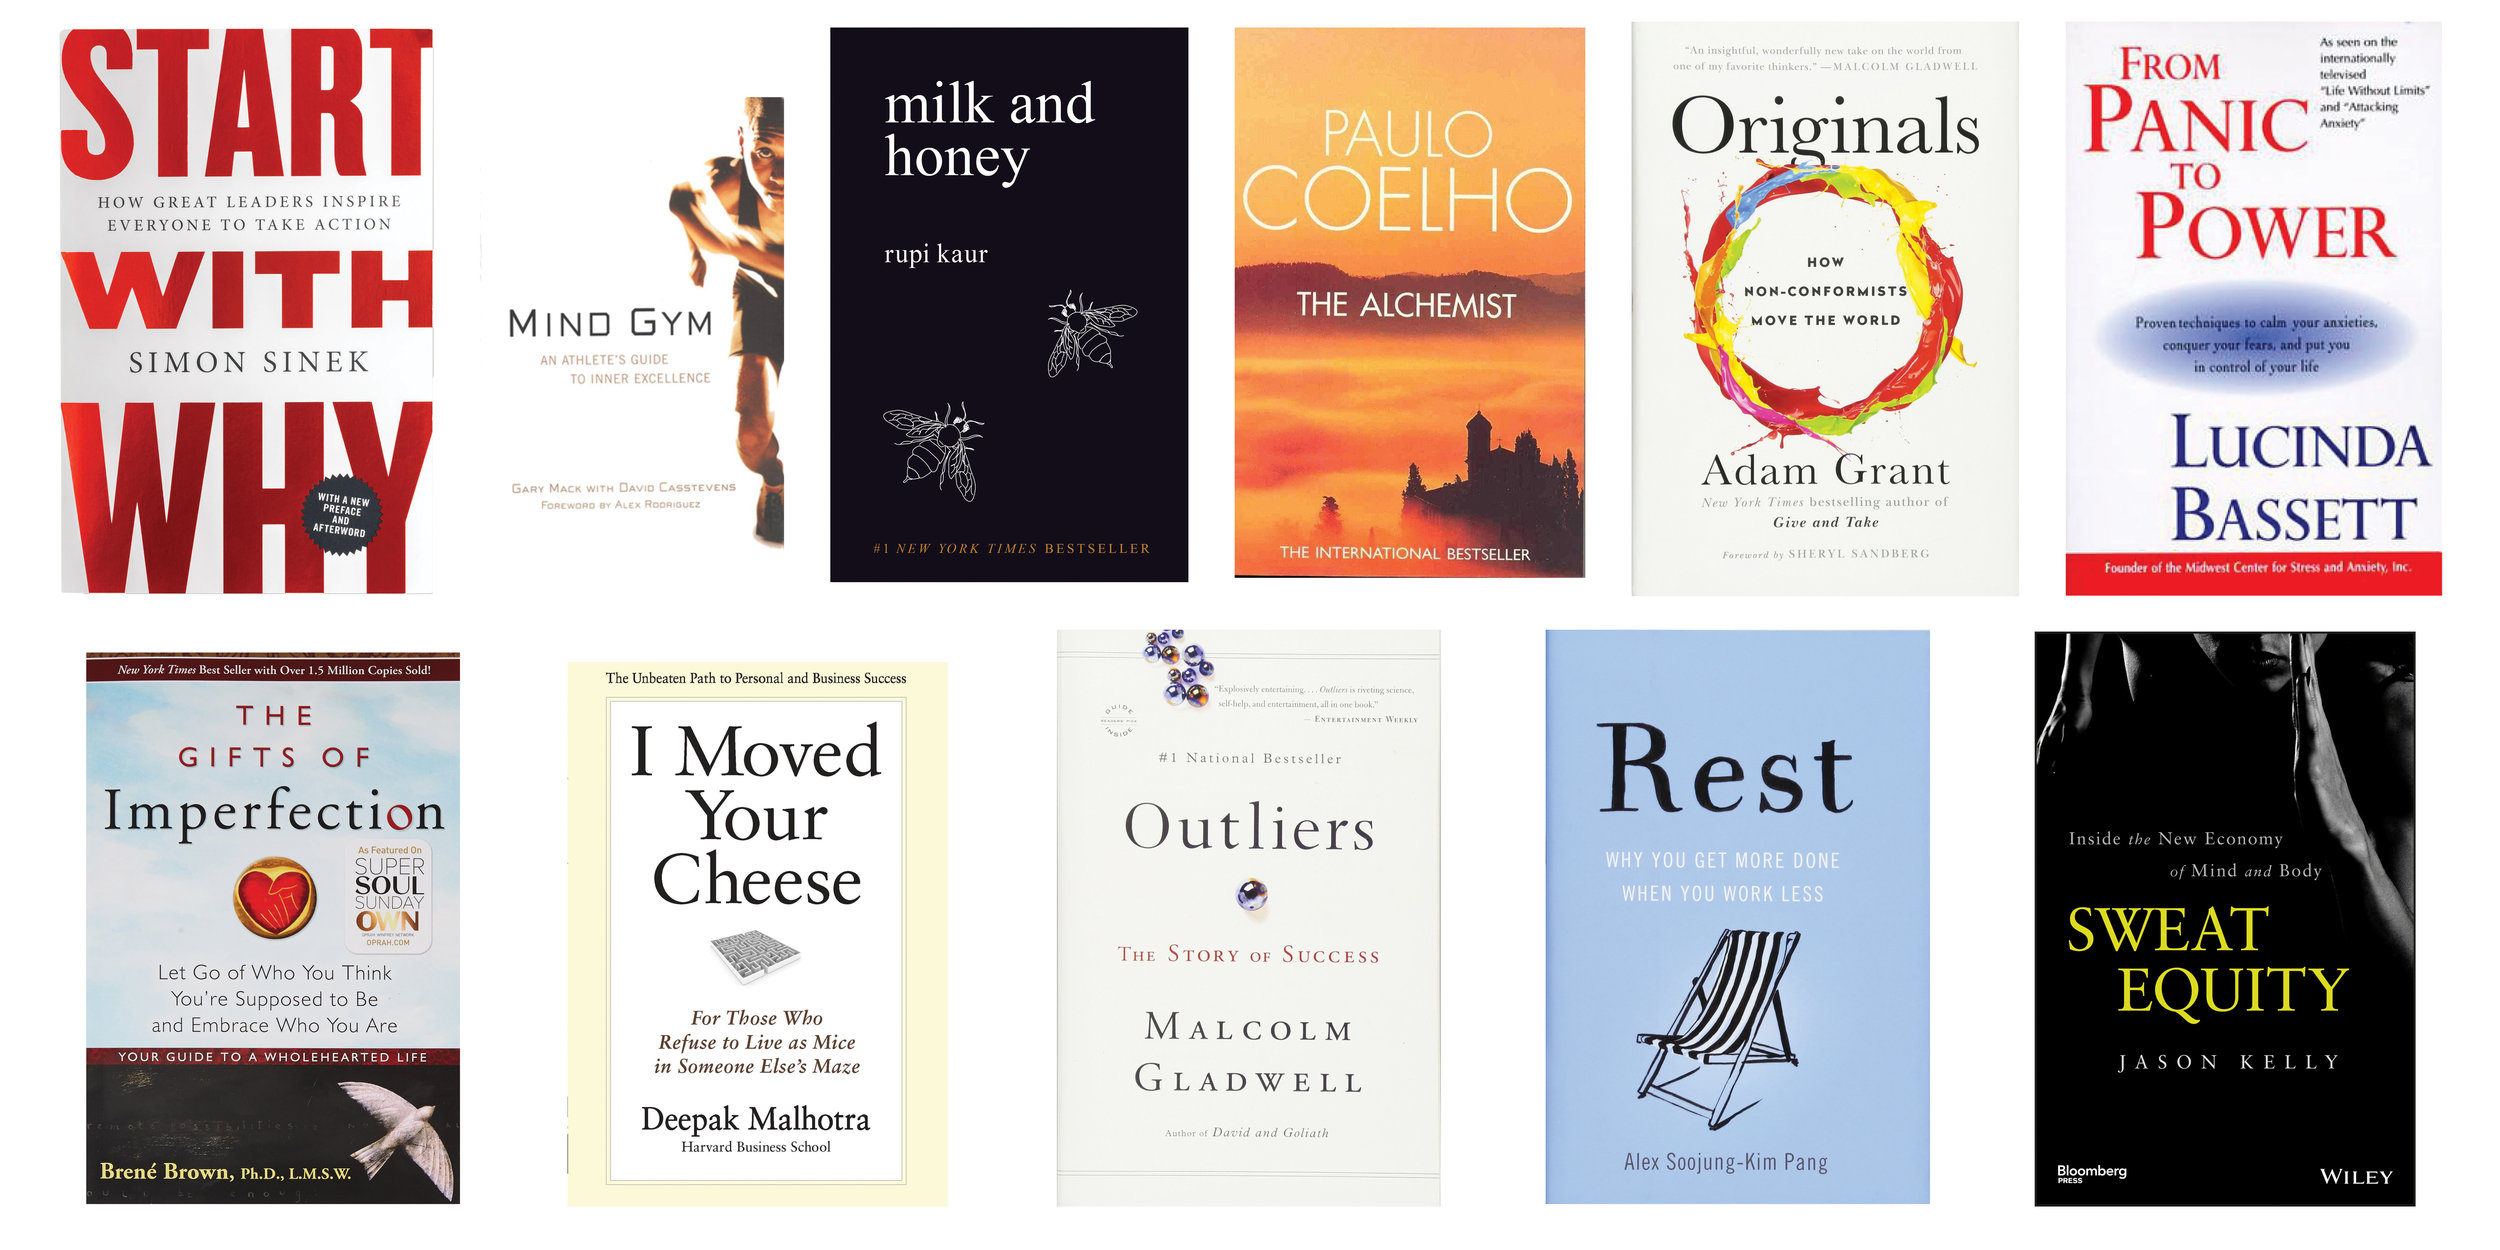 From upper left, across,  Start With Why  |  Mind Gym  |  Milk & Honey  |  The Alchemist  |  Originals  |  From Panic to Power  |  The Gifts of Imperfection  |  I Moved Your Cheese  |  Outliers  |  Rest  |  A Mind of Your Own